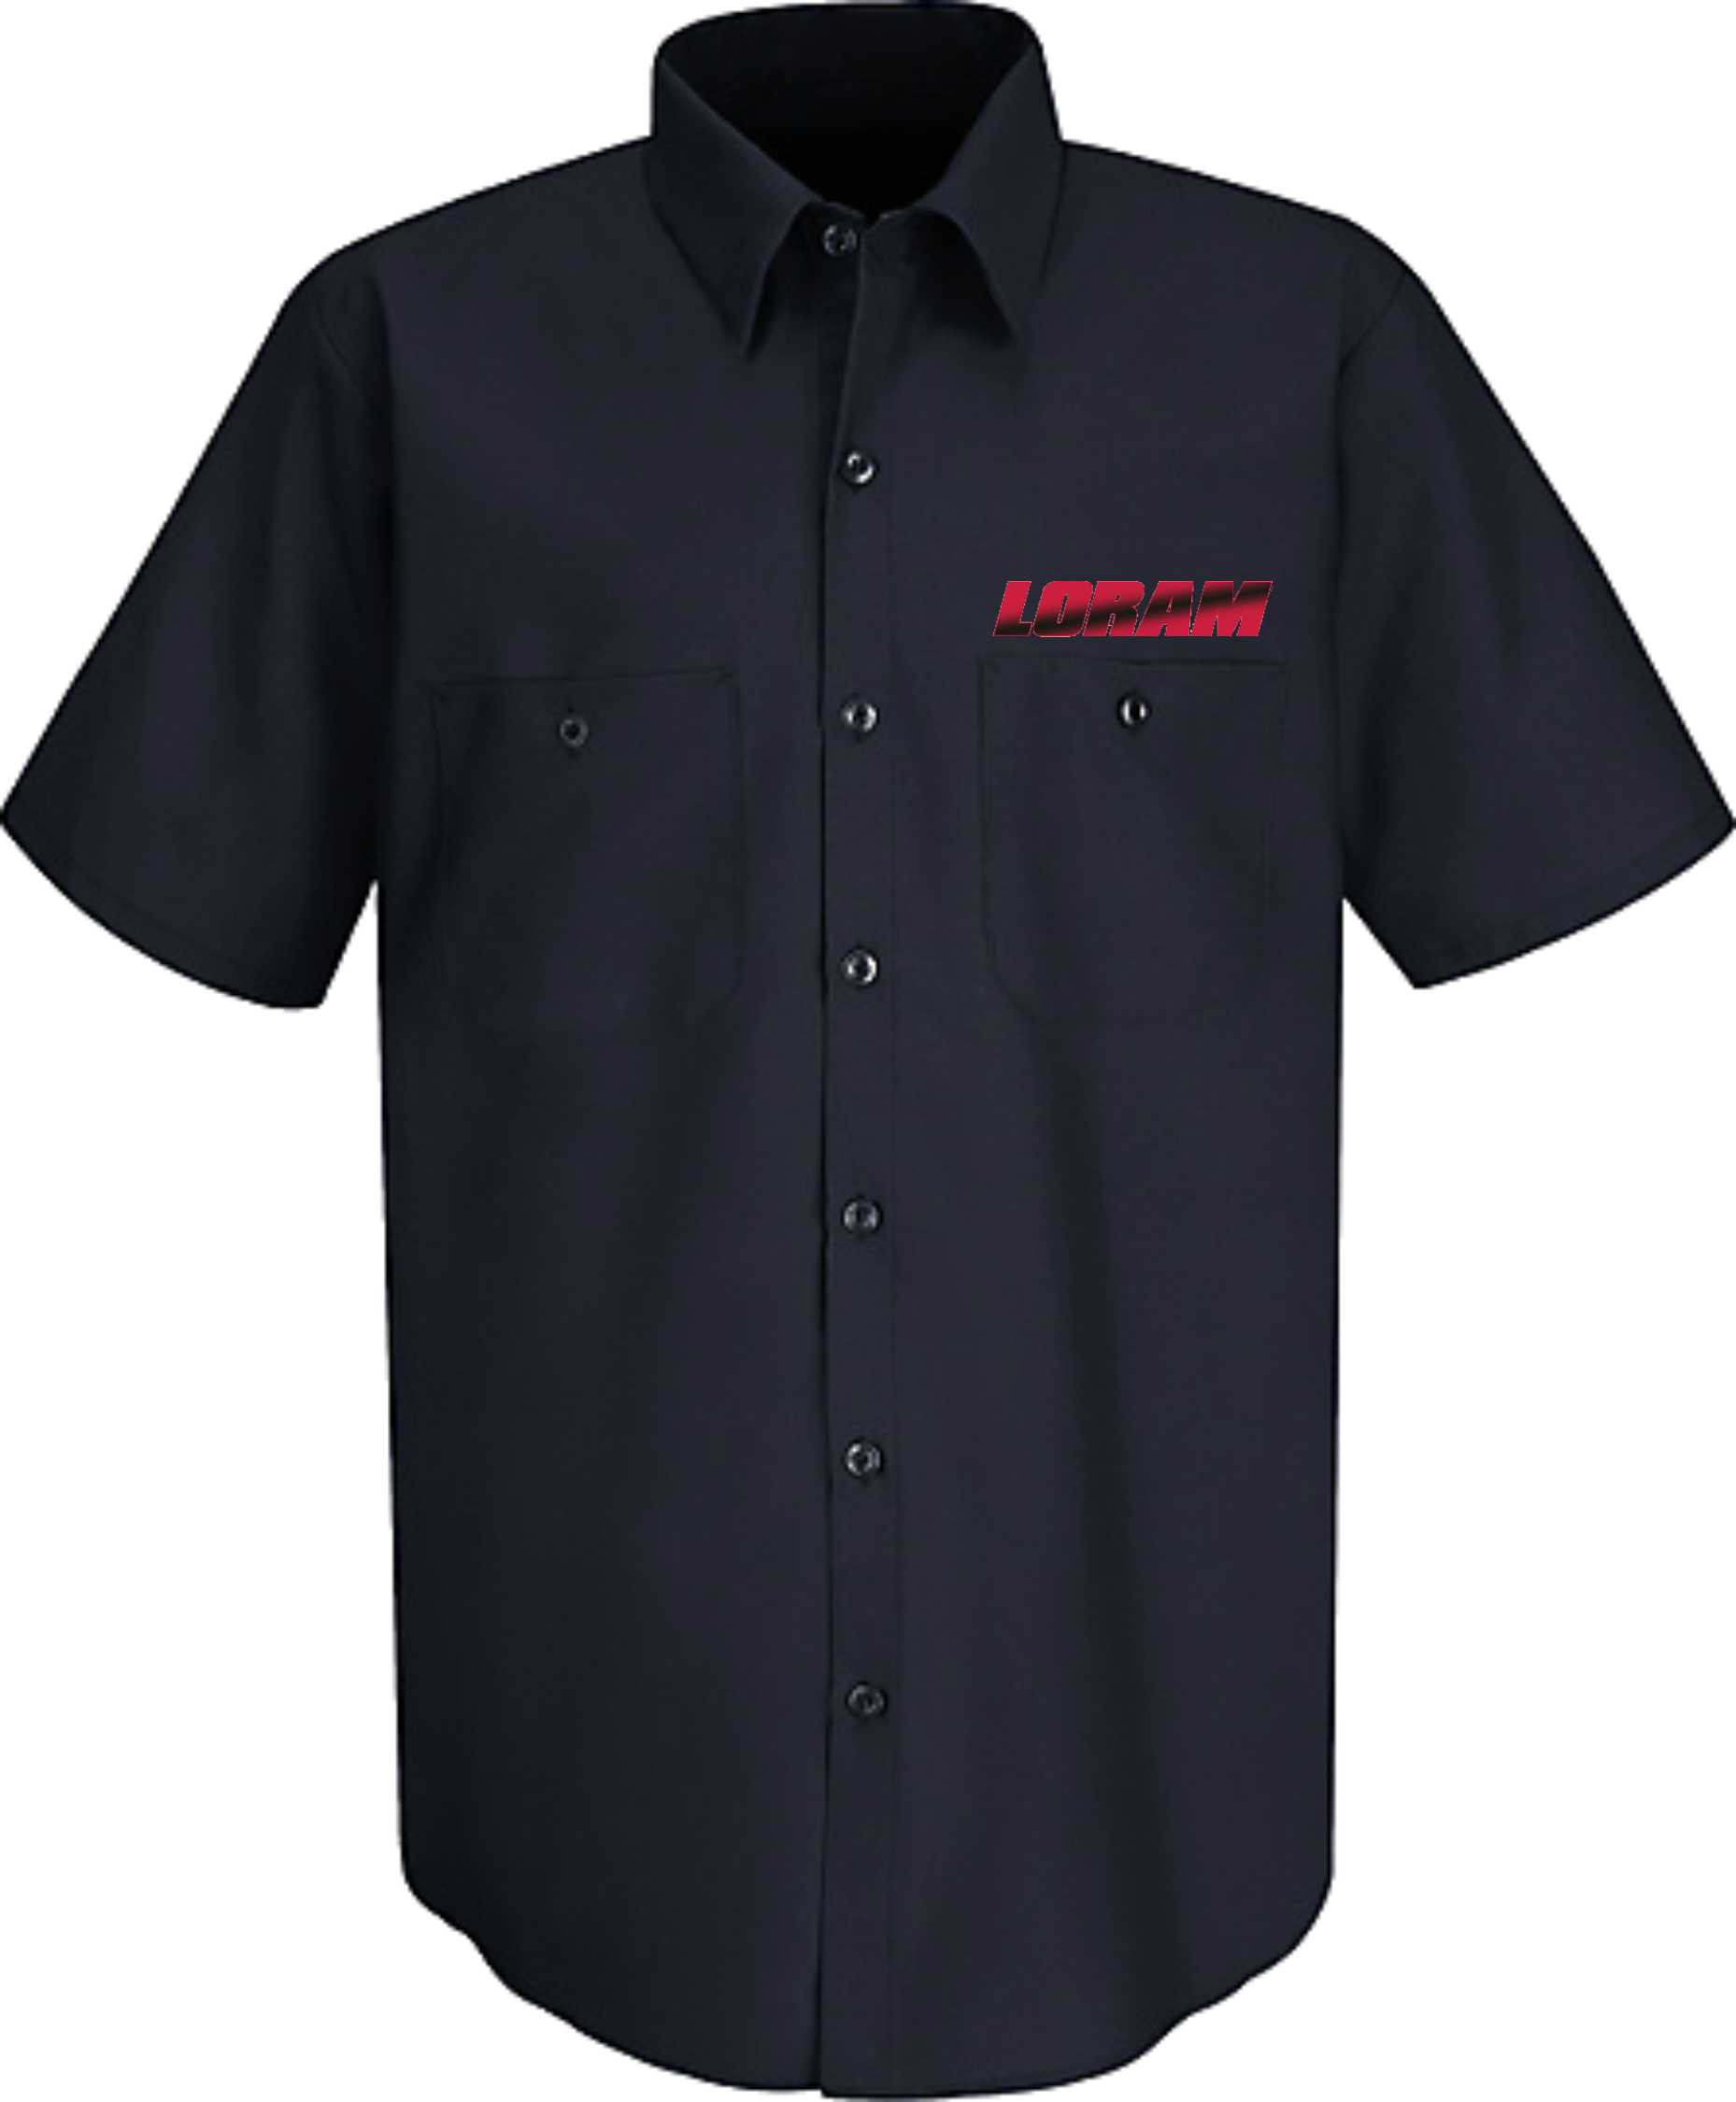 Wrinkle Free Short Sleeve Work Shirt